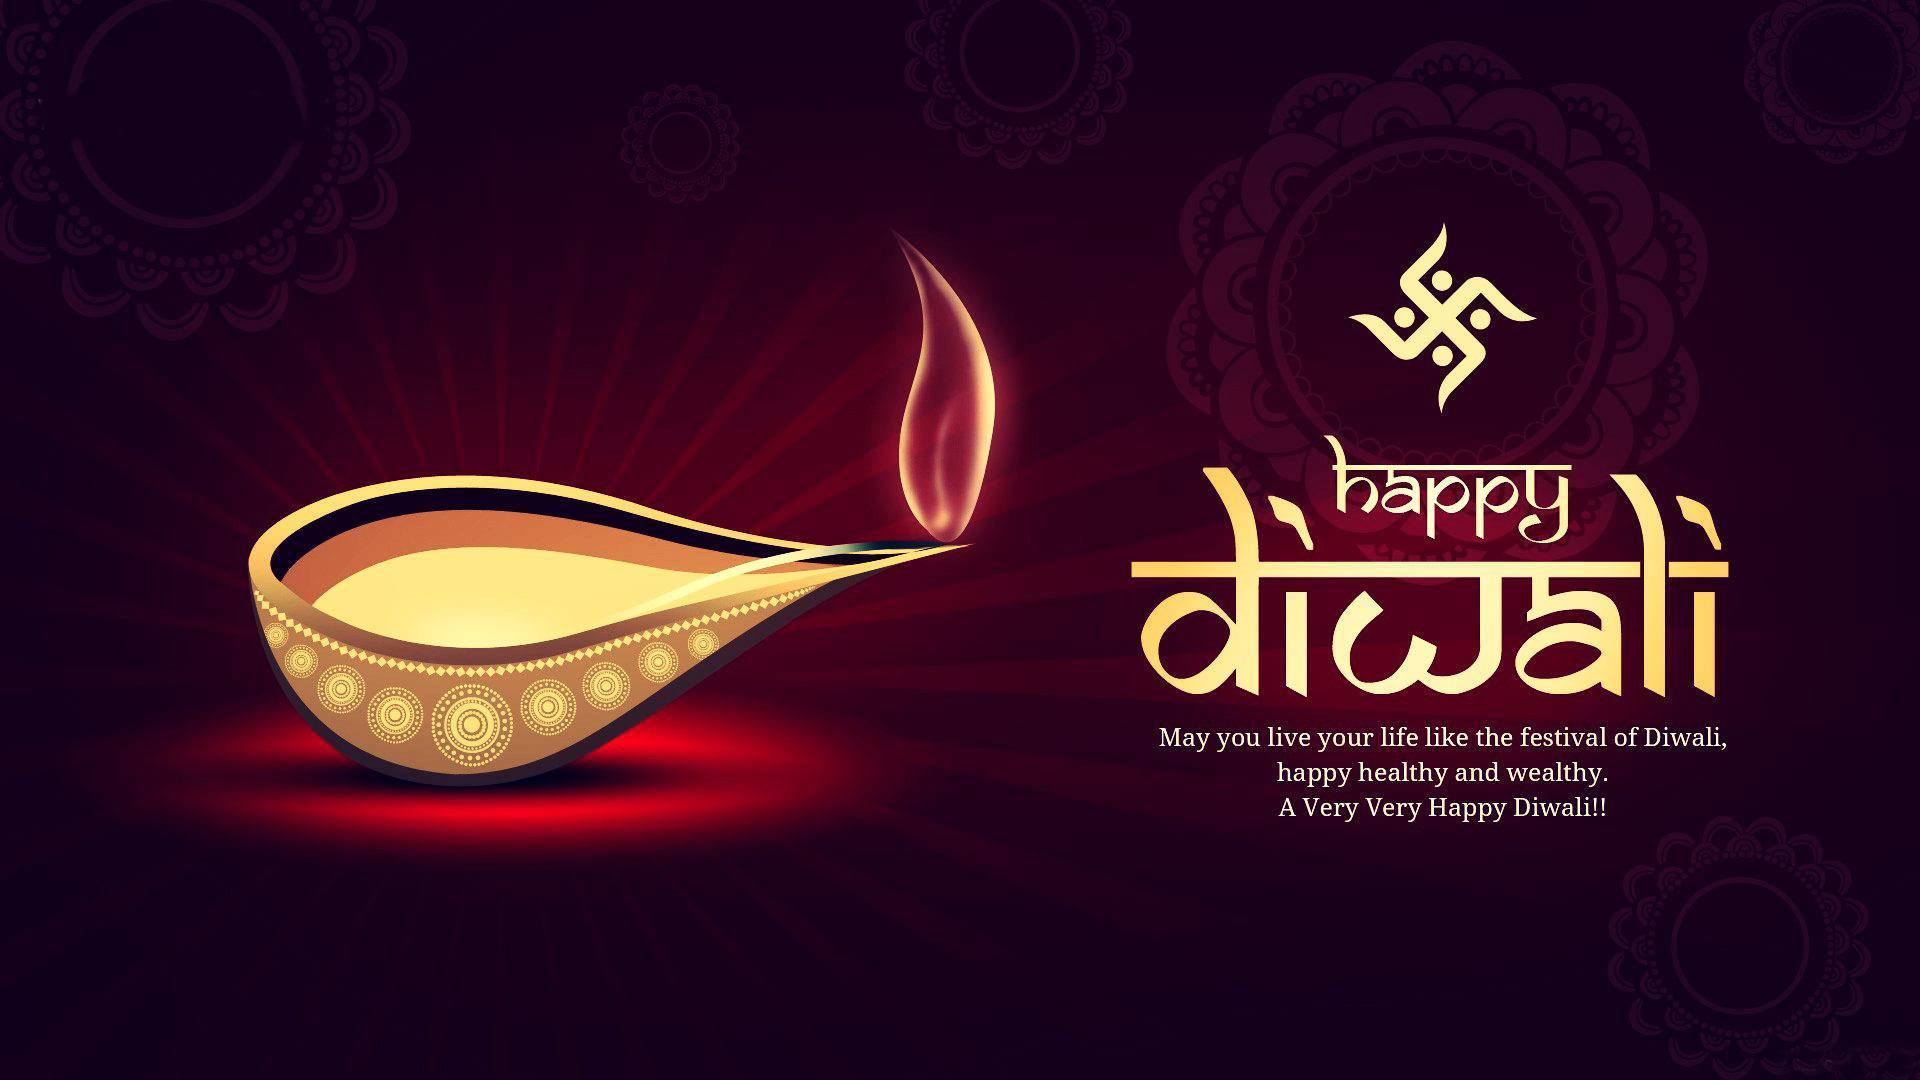 15 Happy Diwali Images Download Free In Hd: Happy Diwali Images 2017